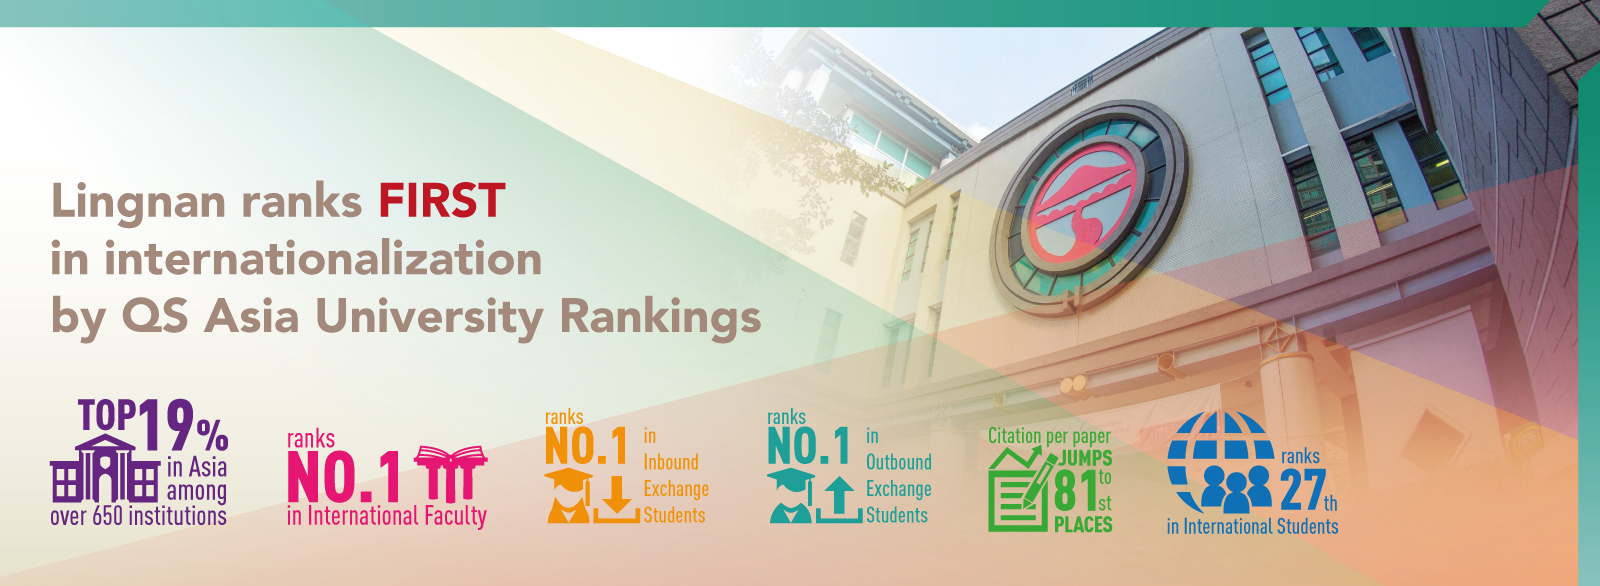 Lingnan ranks FIRST in internationalisation by QS Asia University Rankings 2021